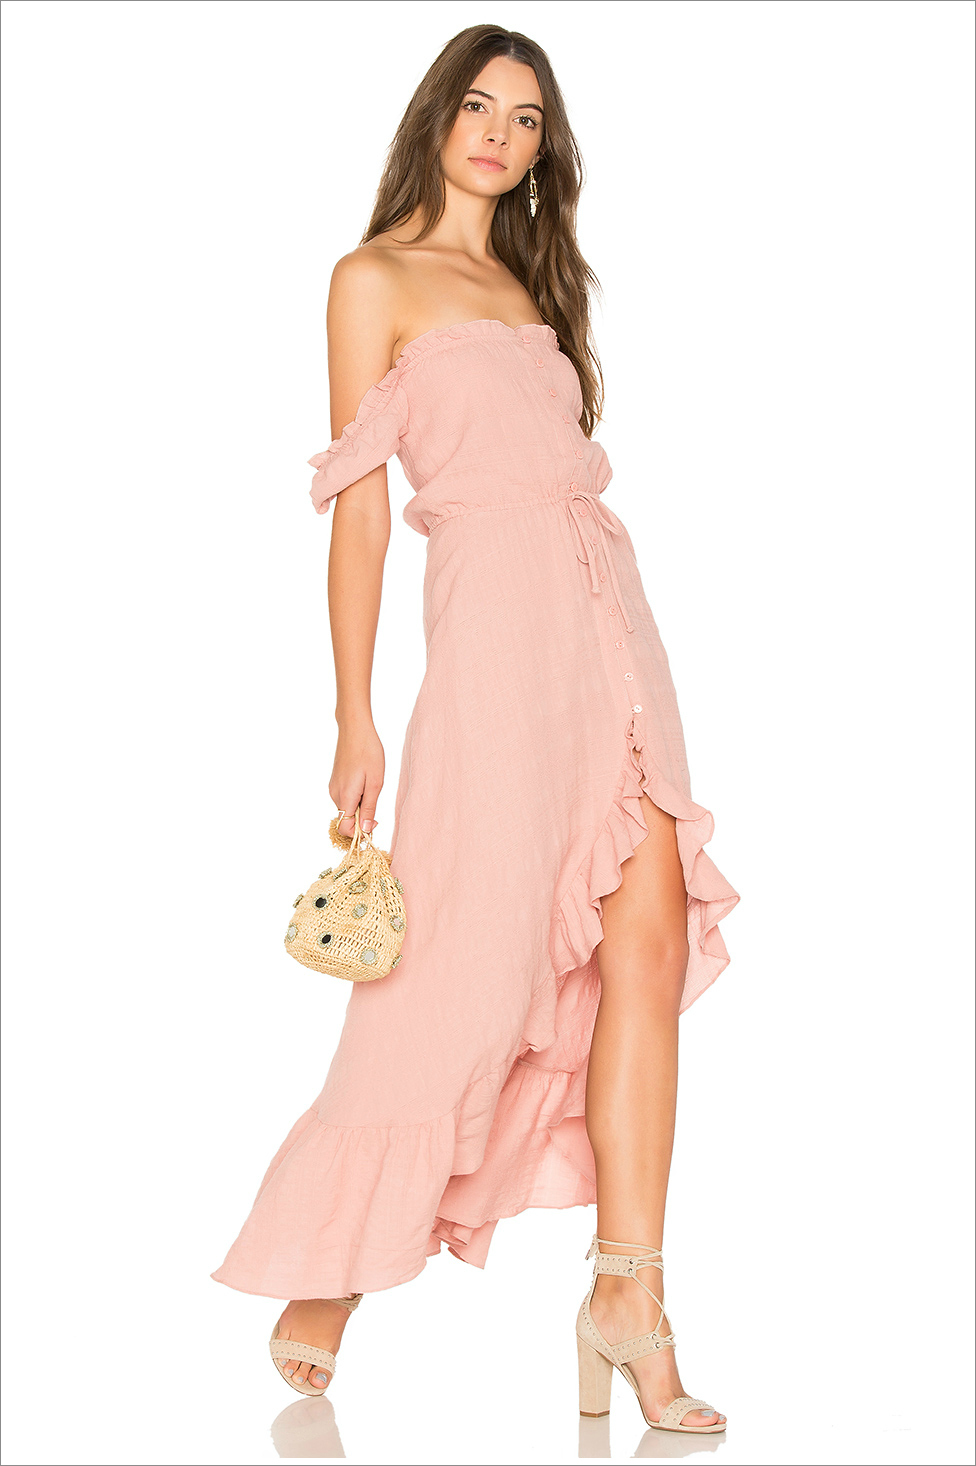 Willow Day dress pink ruffle auguste revolve honeymoon outfit ideas